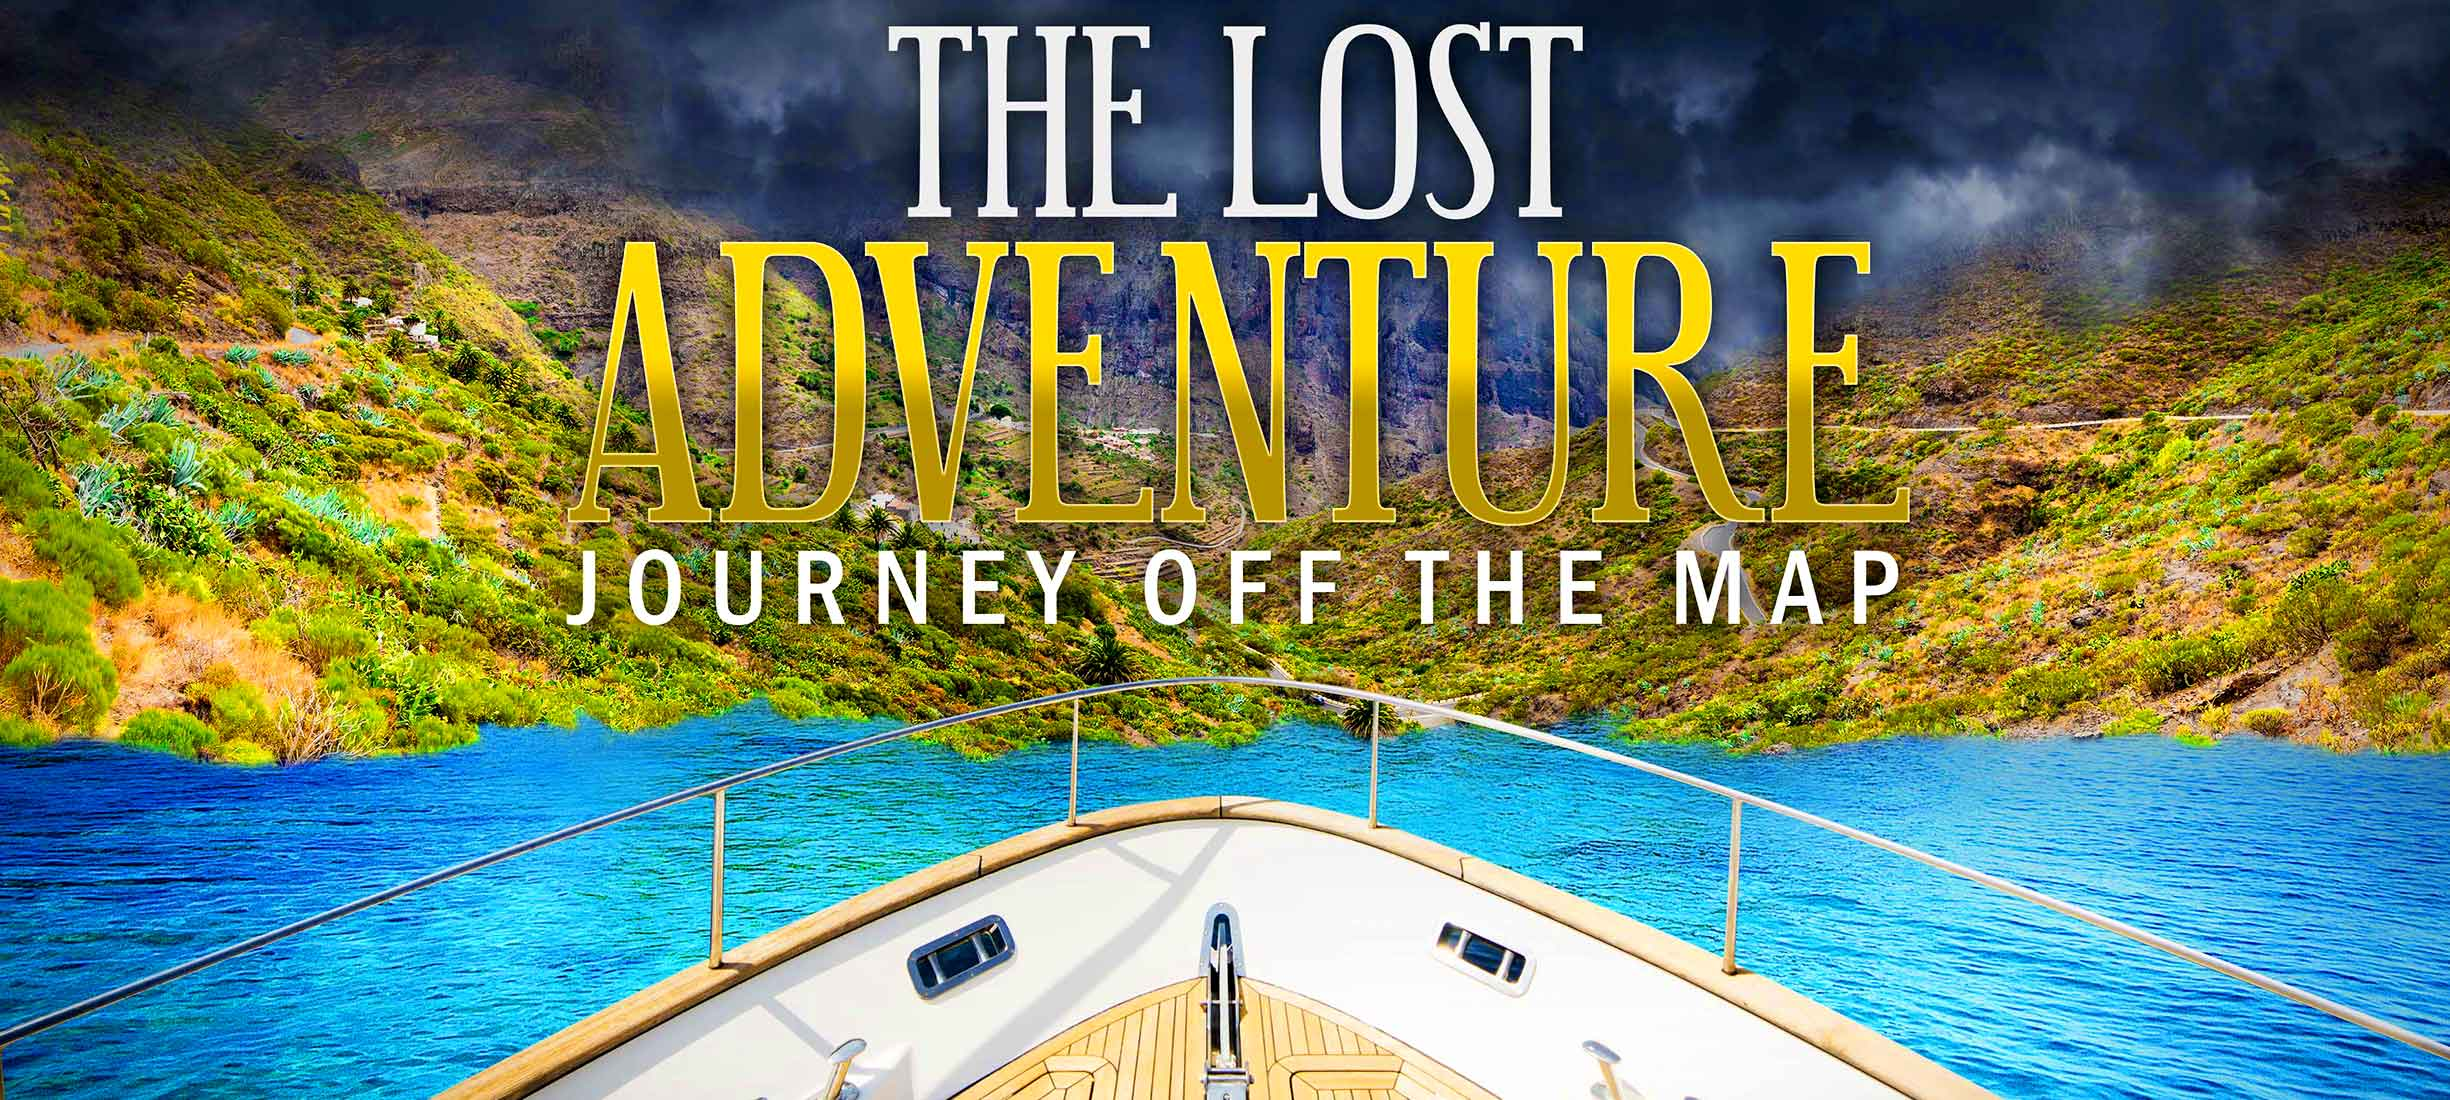 The Lost Adventure